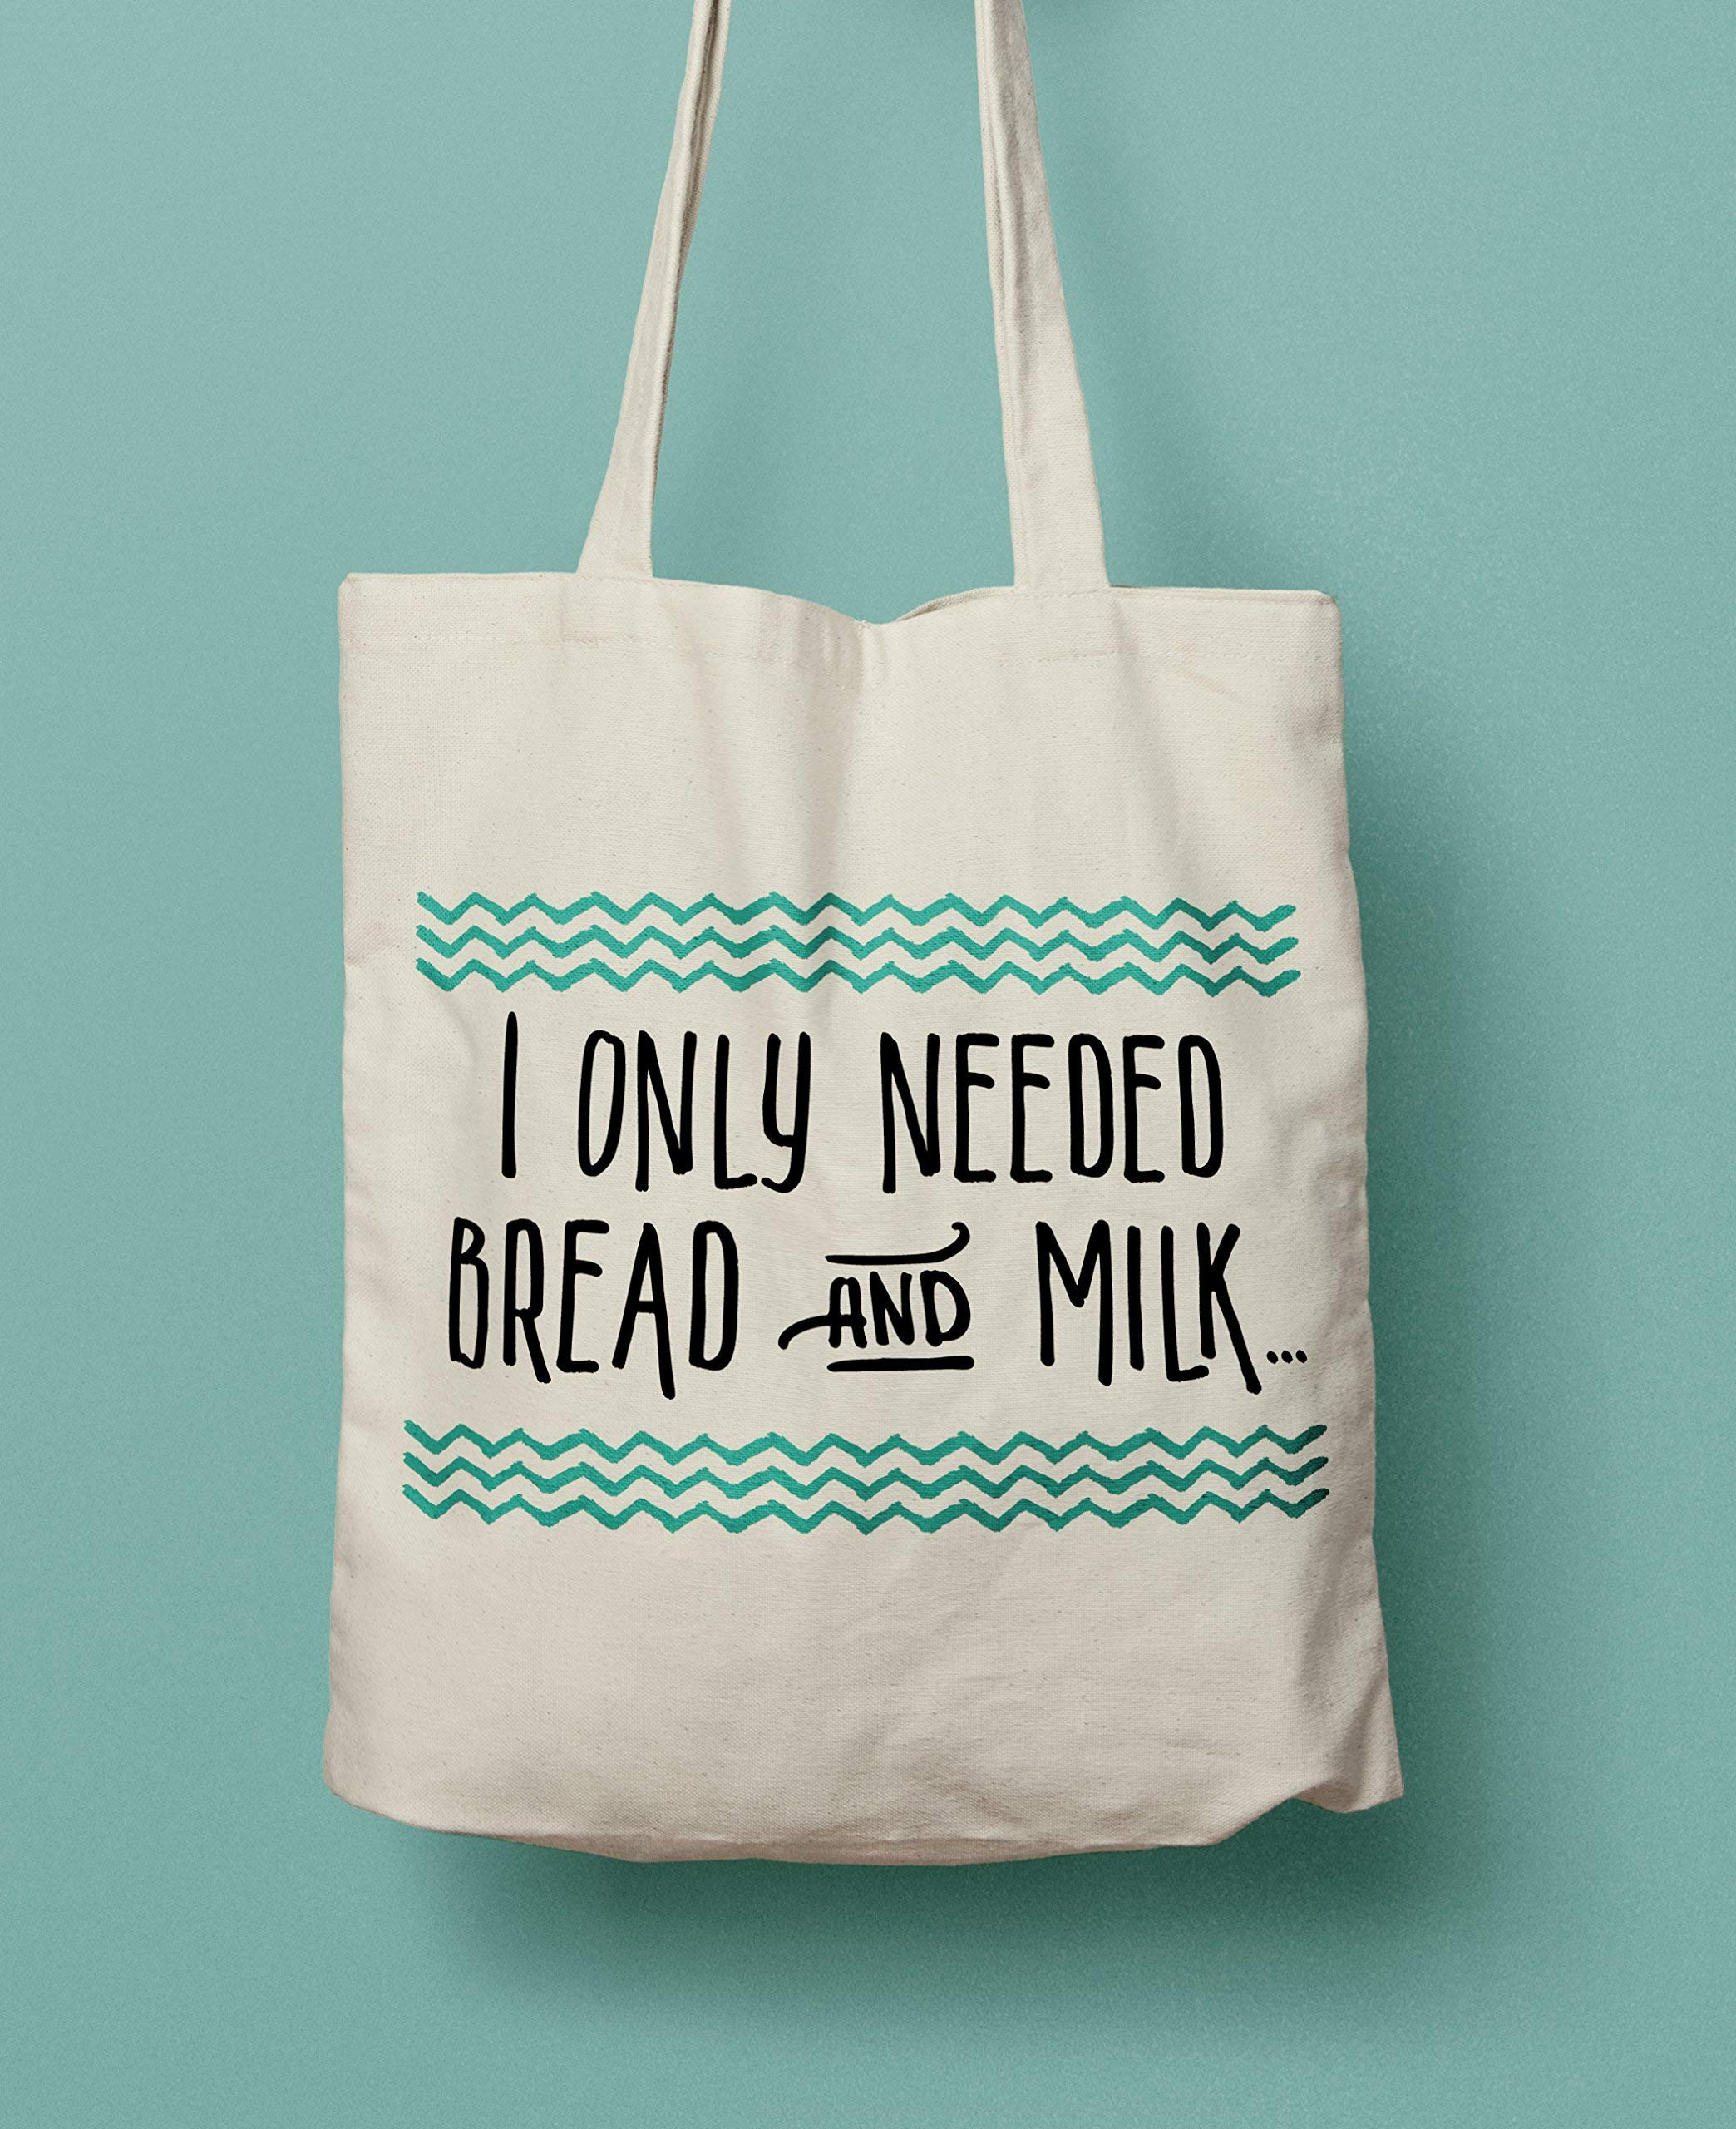 Shopaholic gift - I Only Needed Bread and Milk Tote Bag - handmade-bags